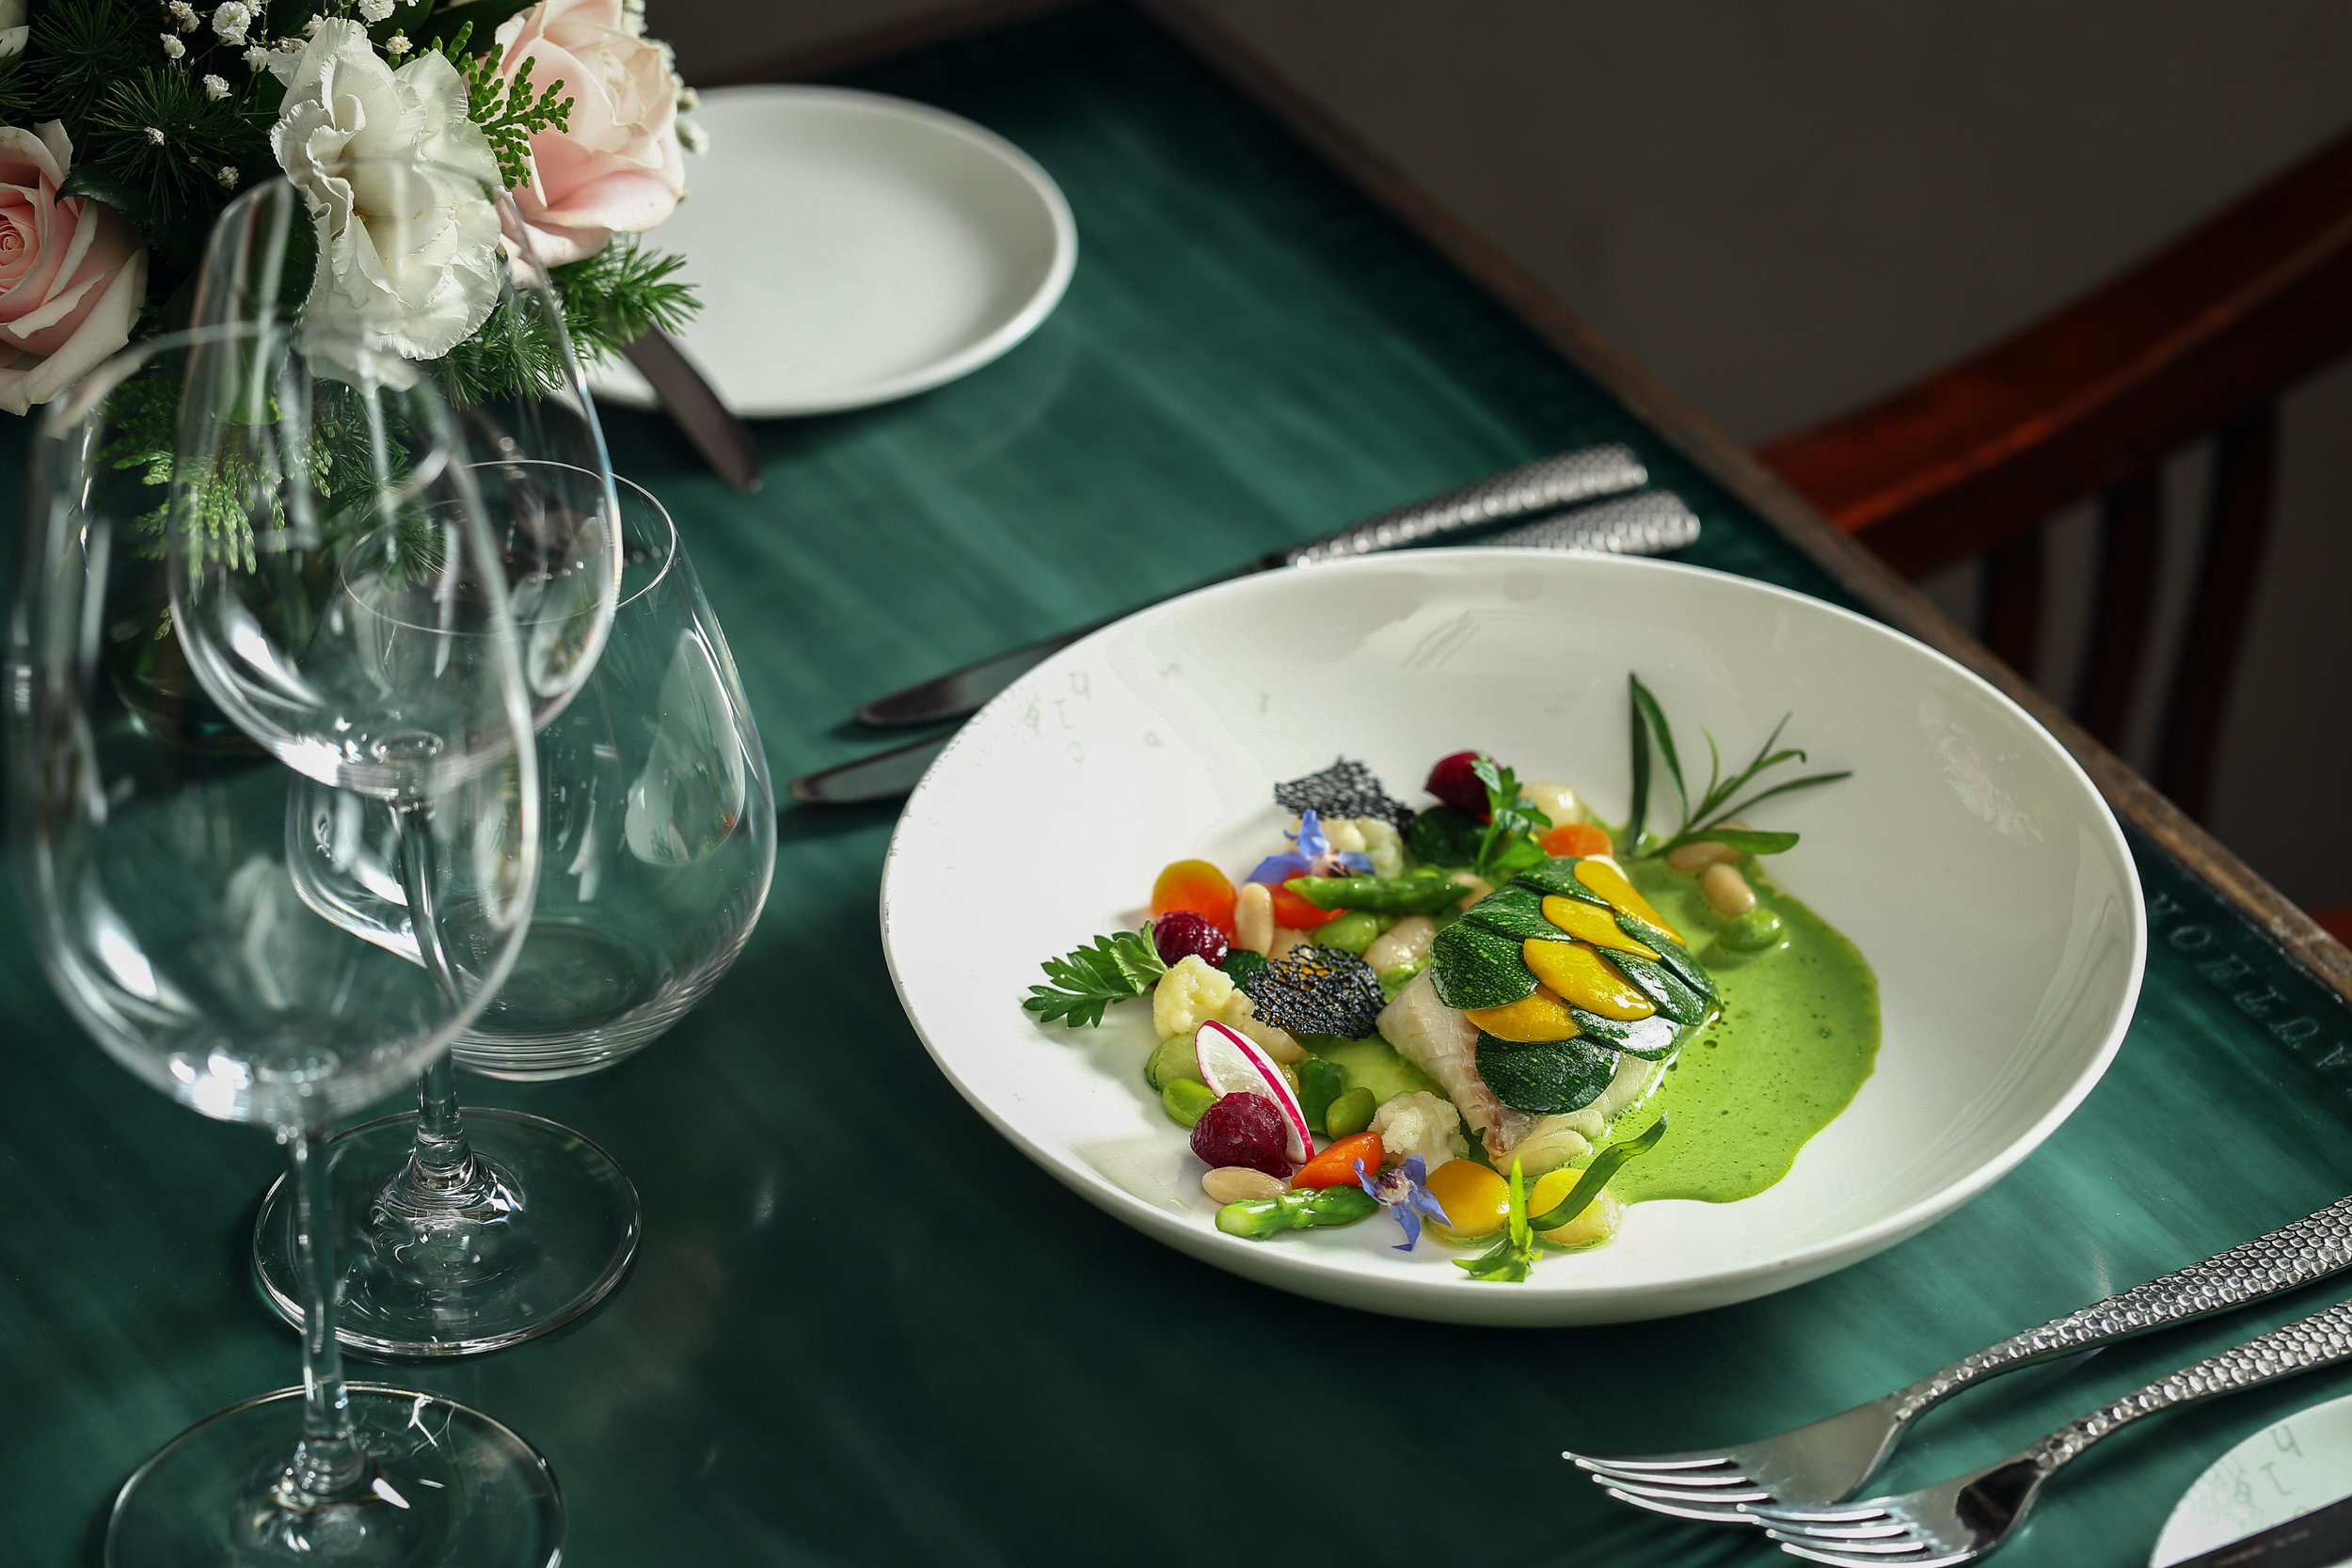 2 - Steamed cod fish with zuicchini and basil pesto.jpg